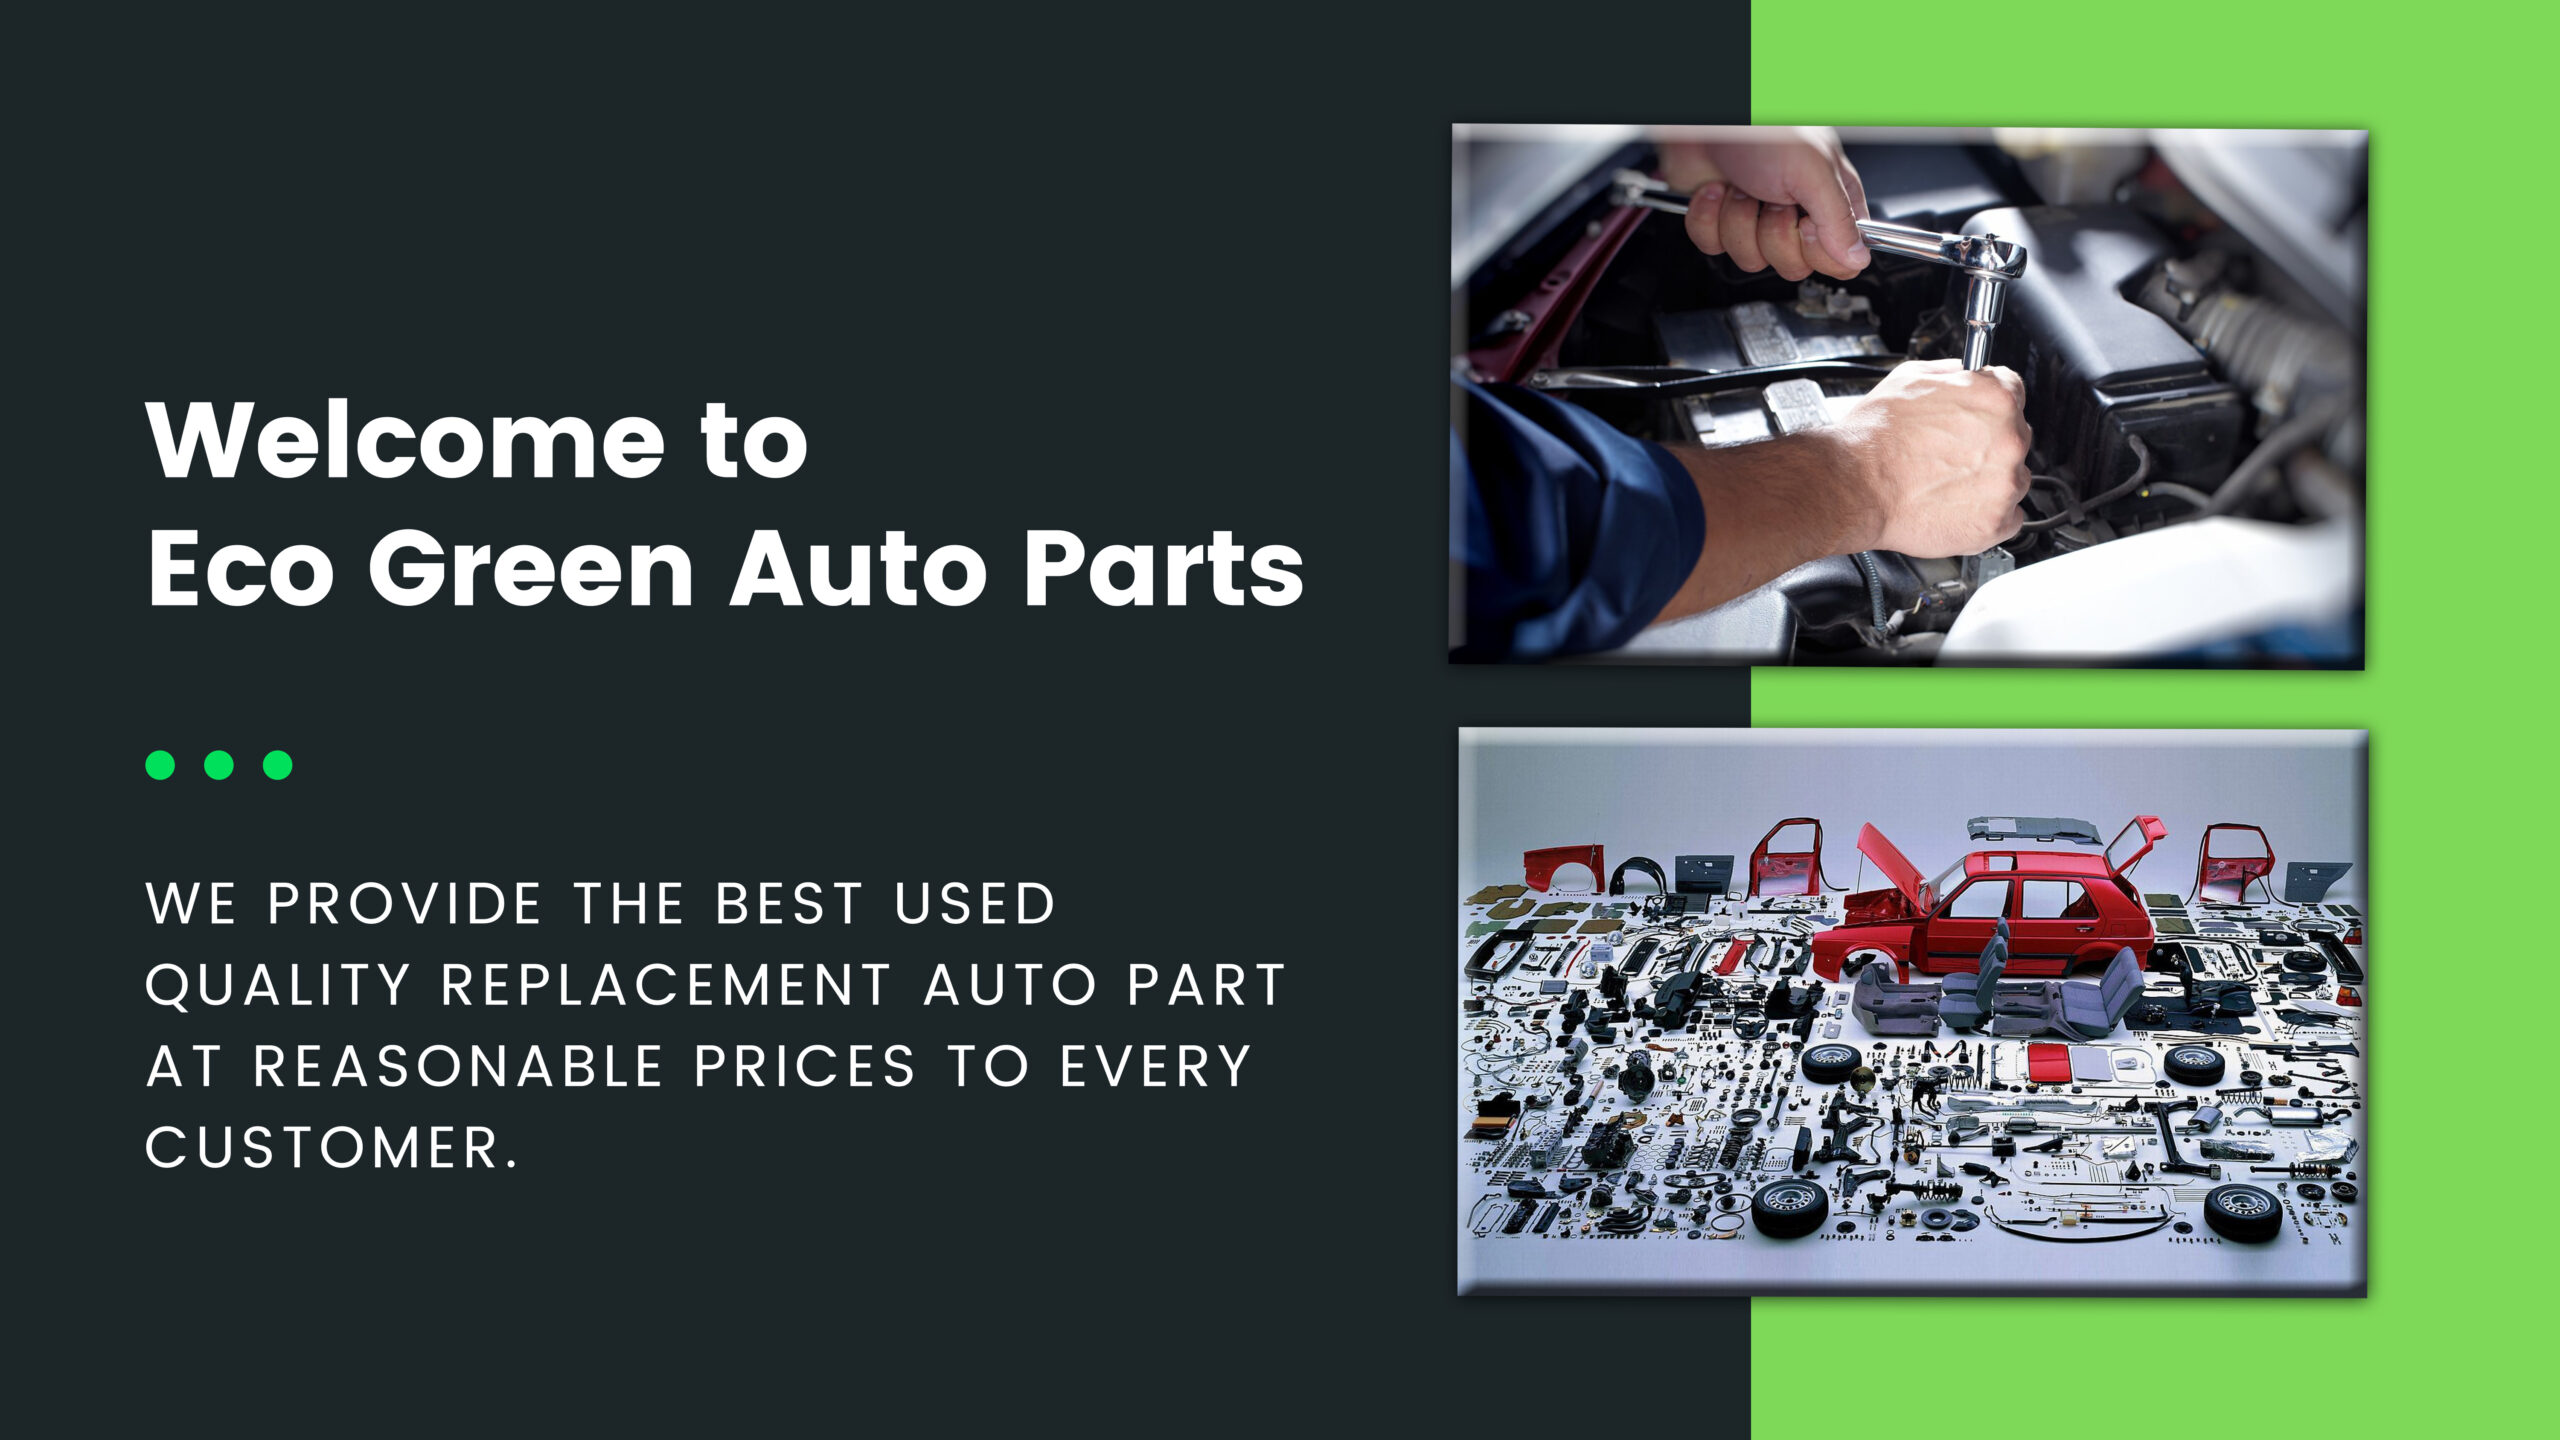 Eco Green Auto Parts: We provide the best used quality replacement auto part at reasonable prices to every customer